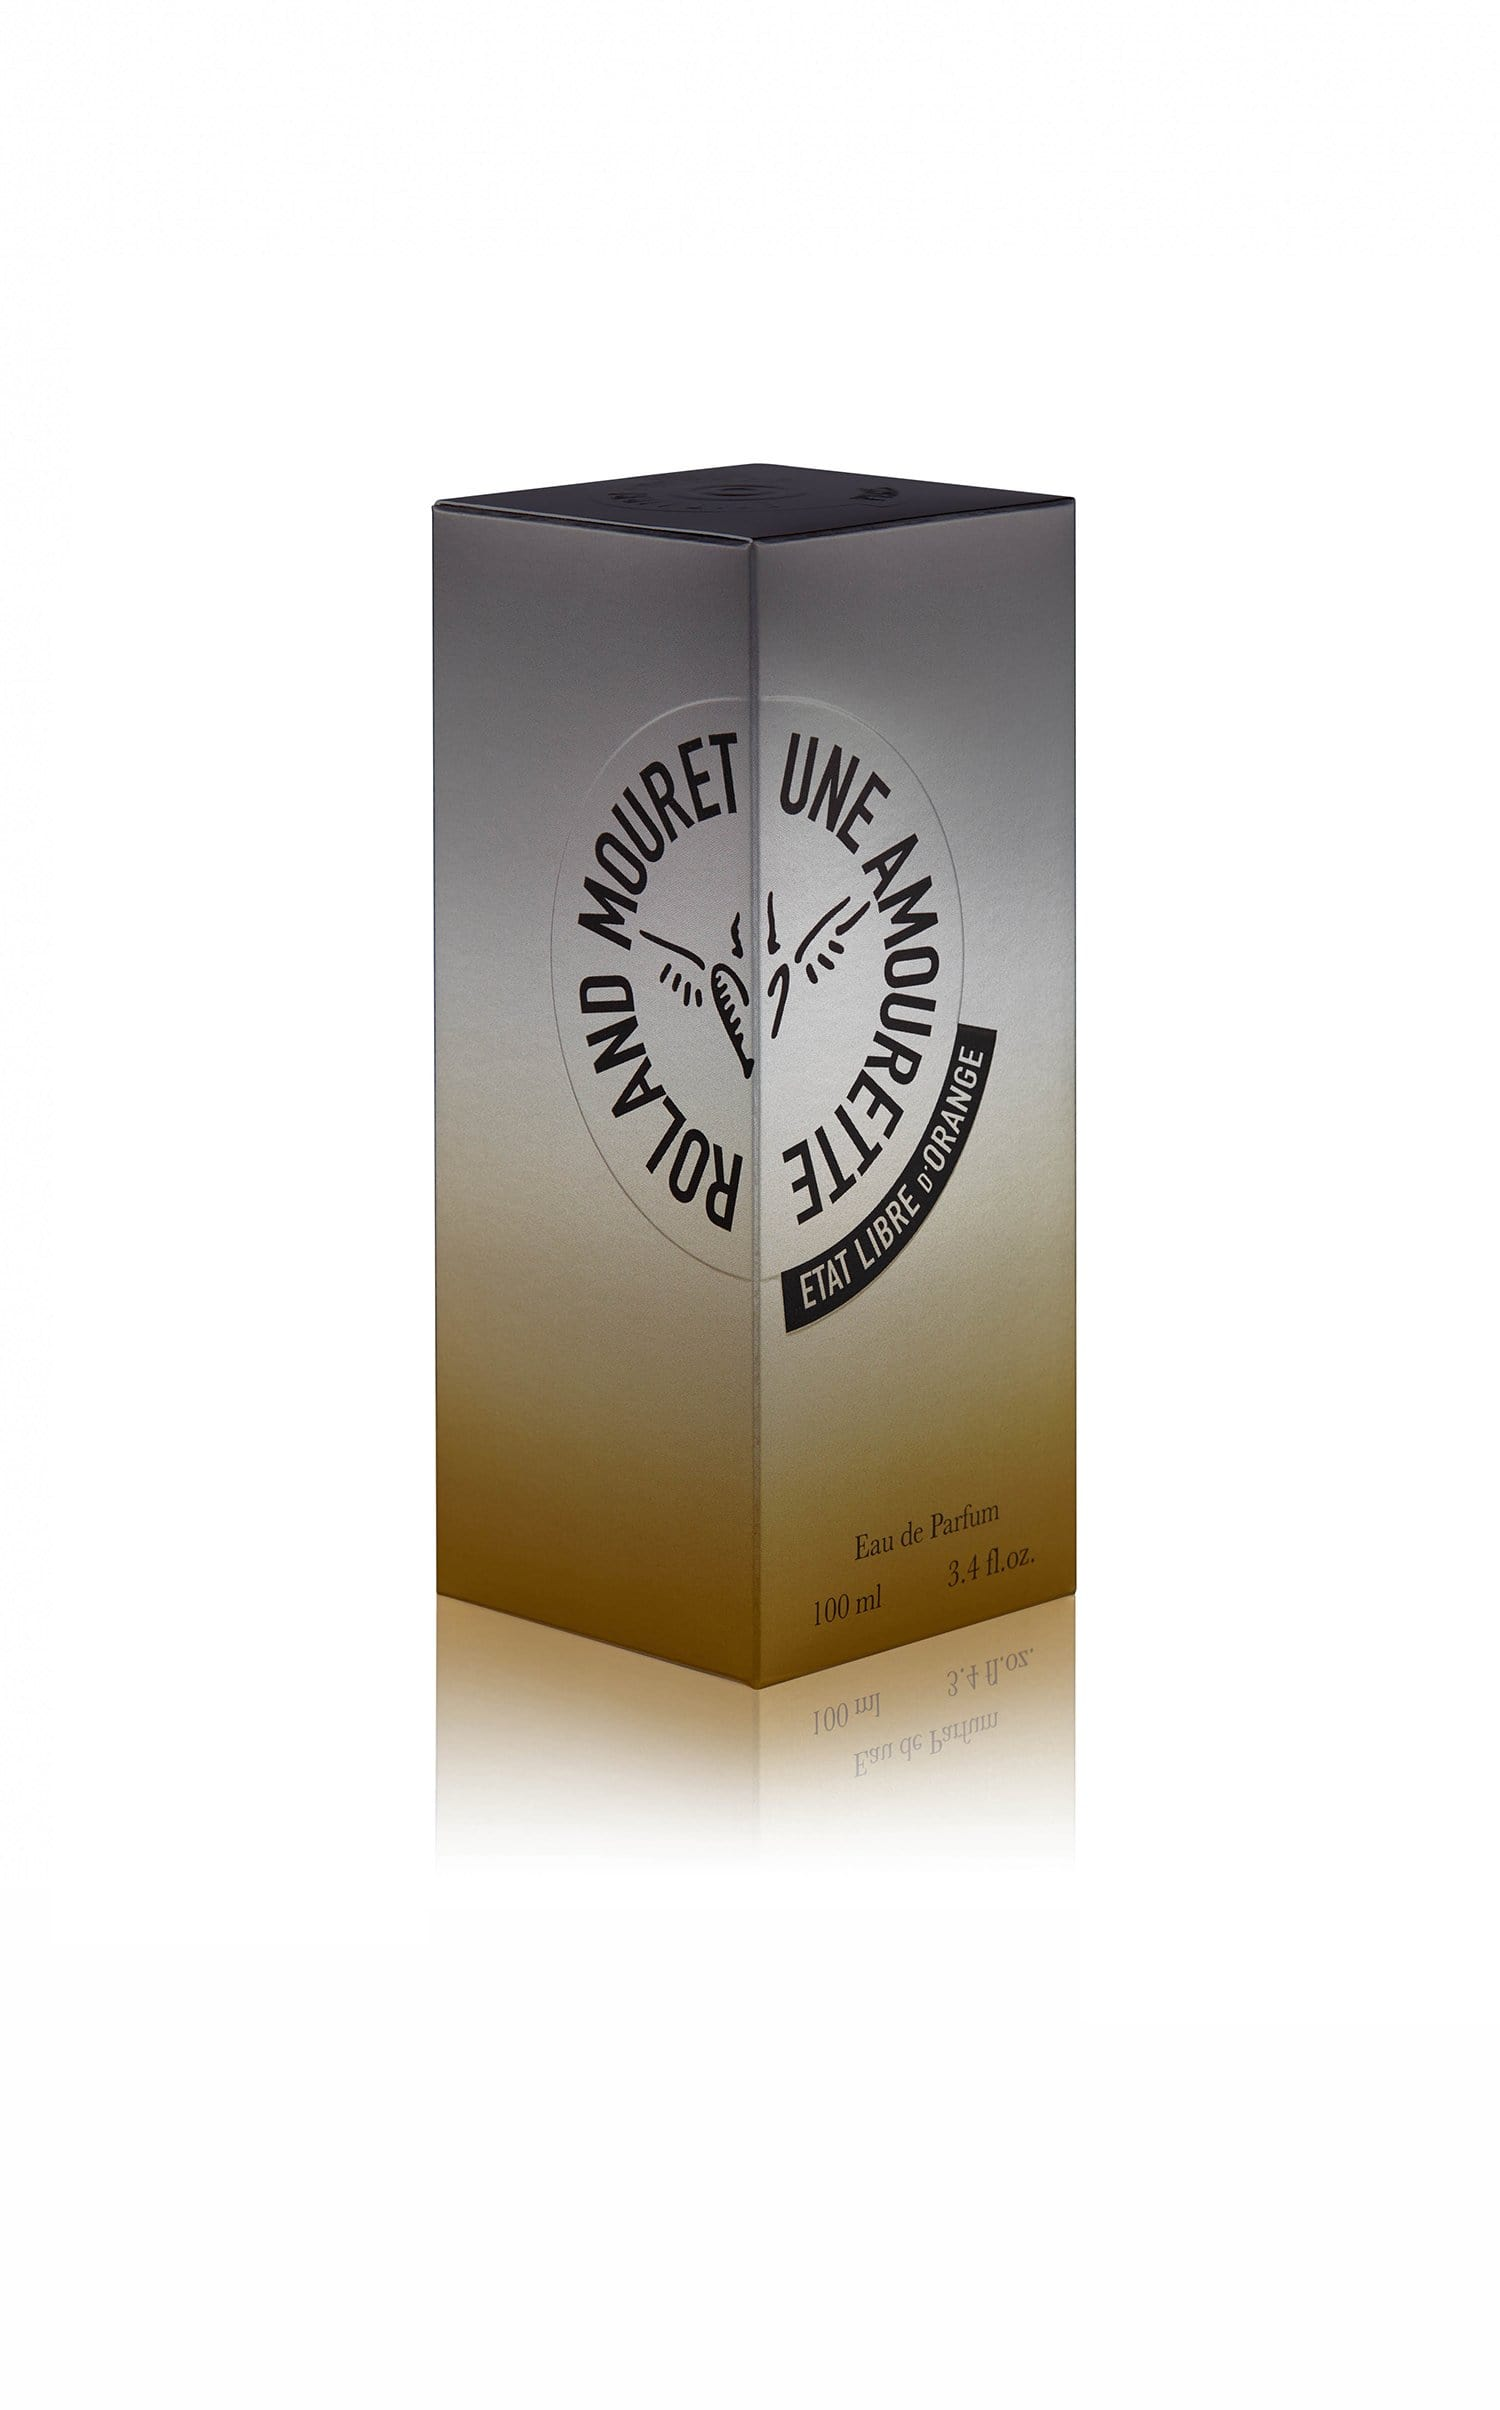 Une Amourette, the perfume from Roland Mouret